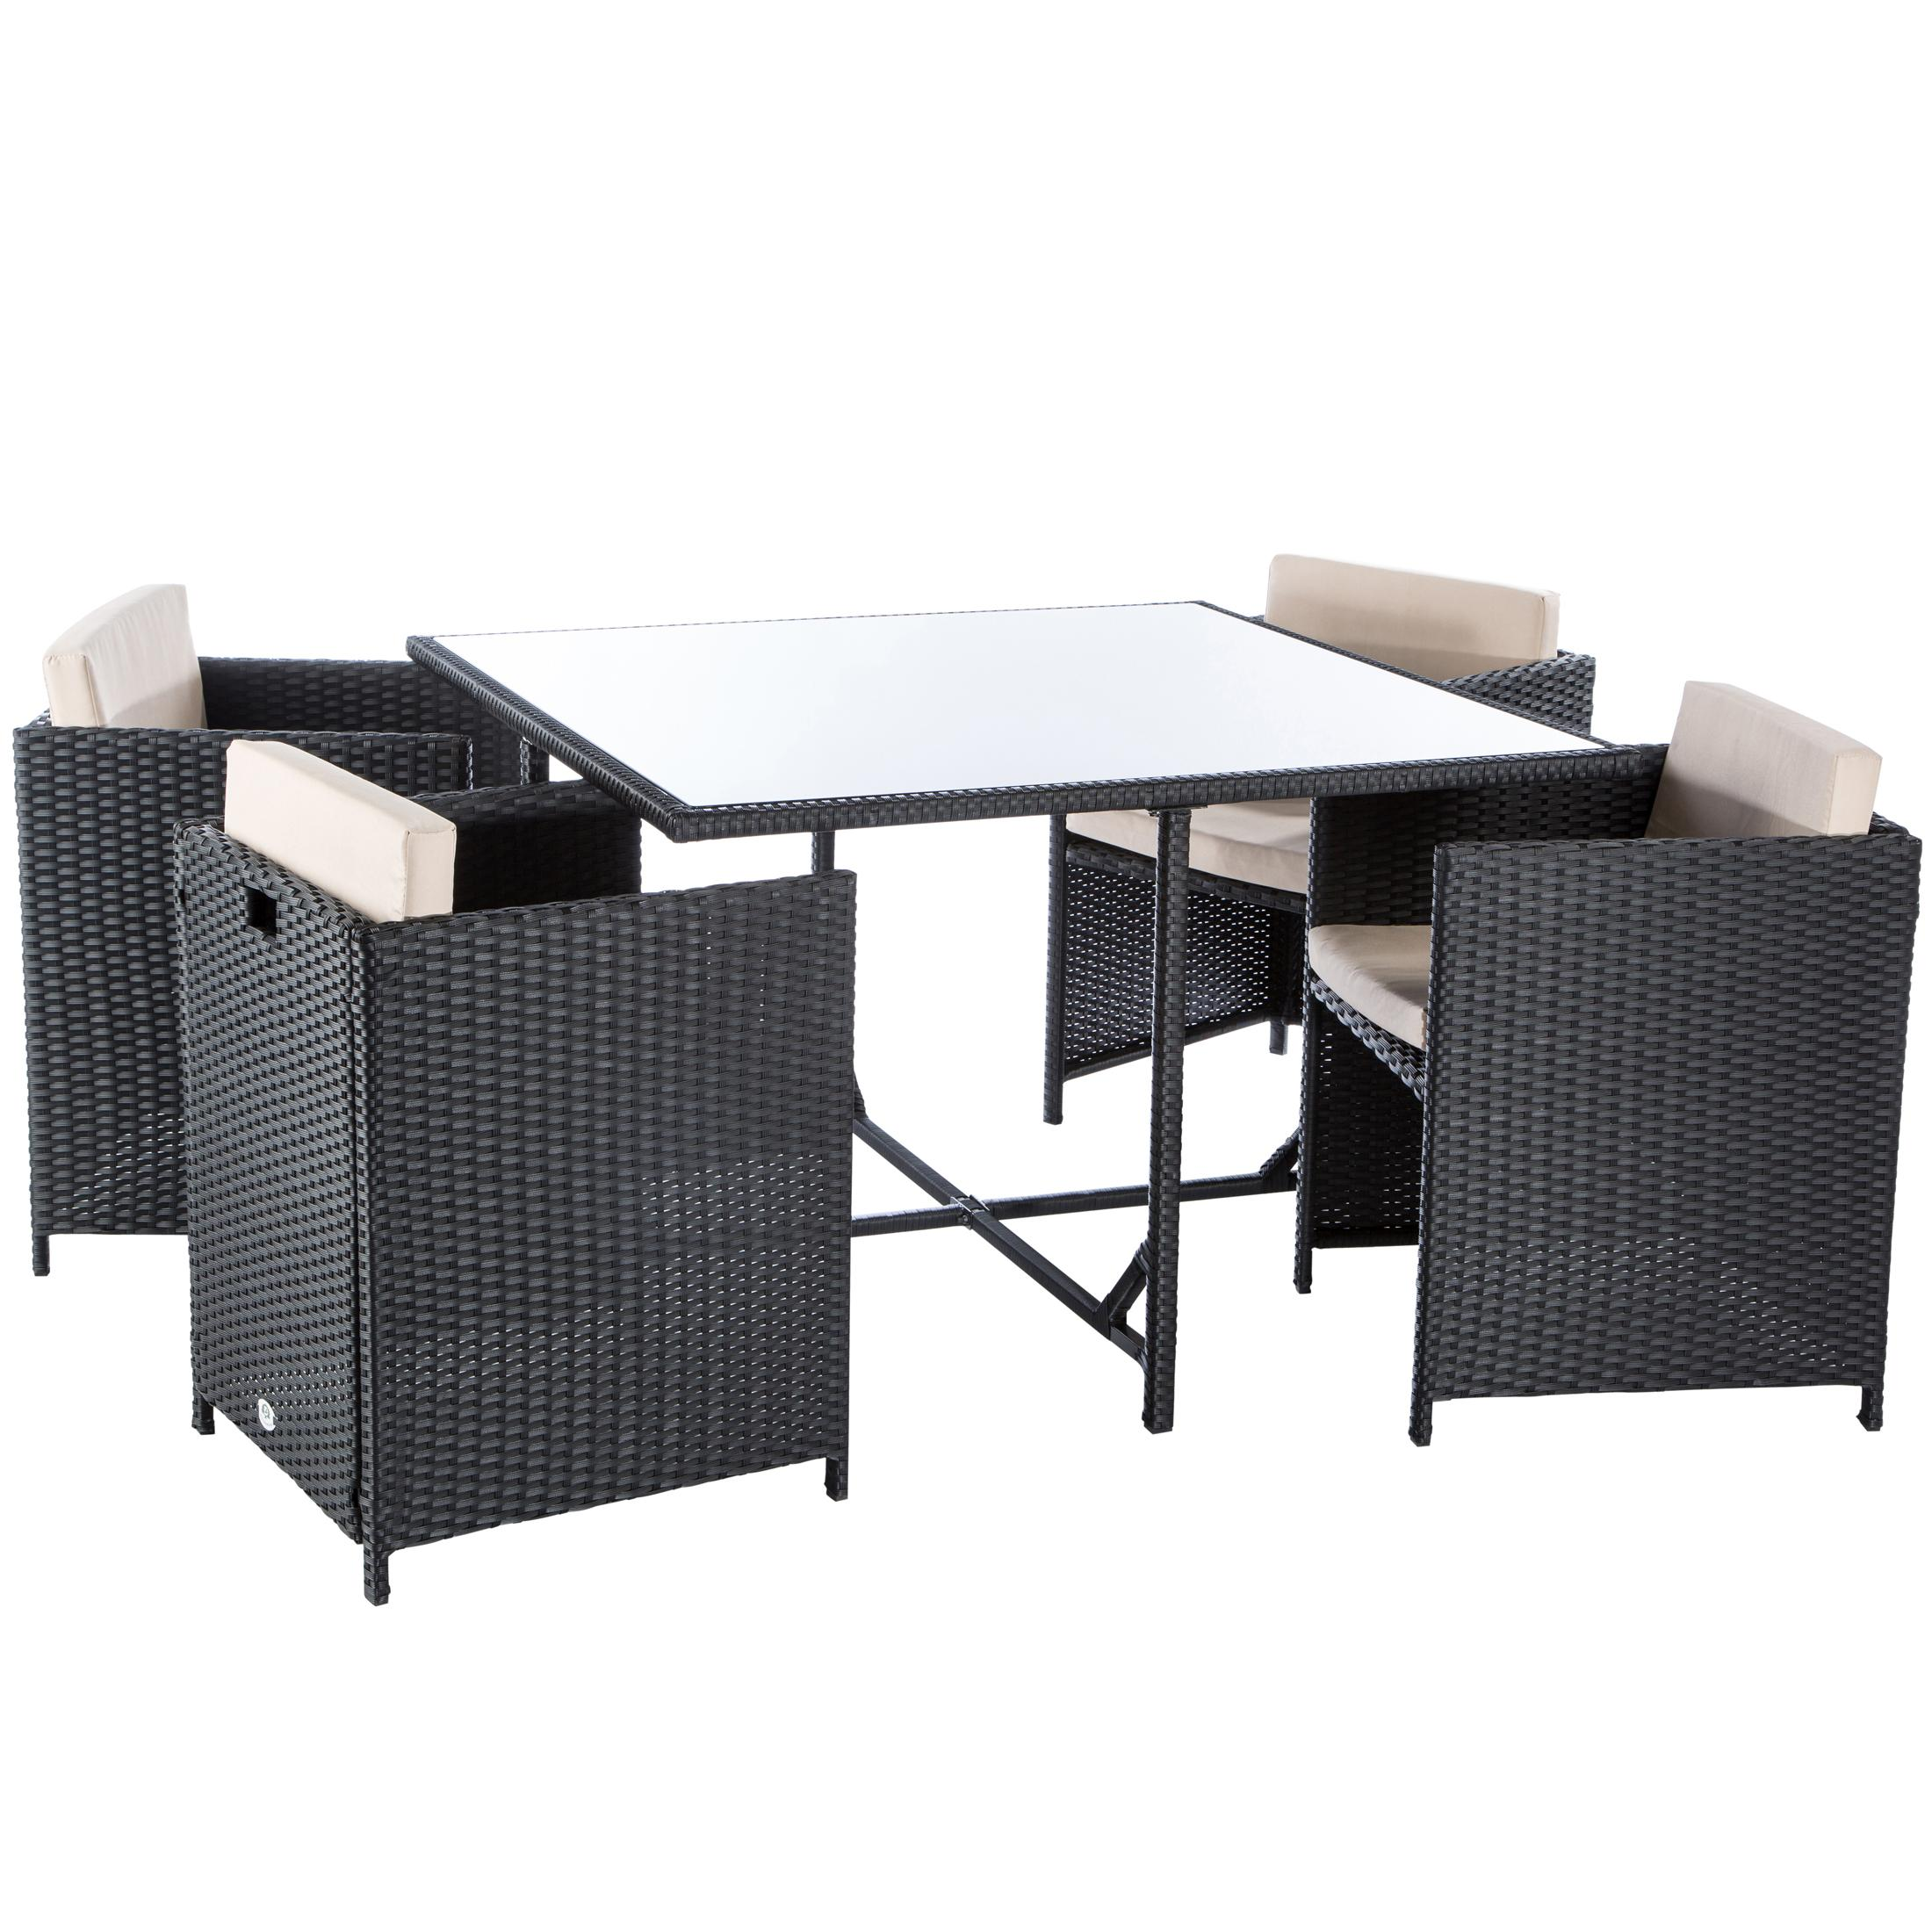 Ultranatura poly rattan lounge set palma serie for Amazon tisch